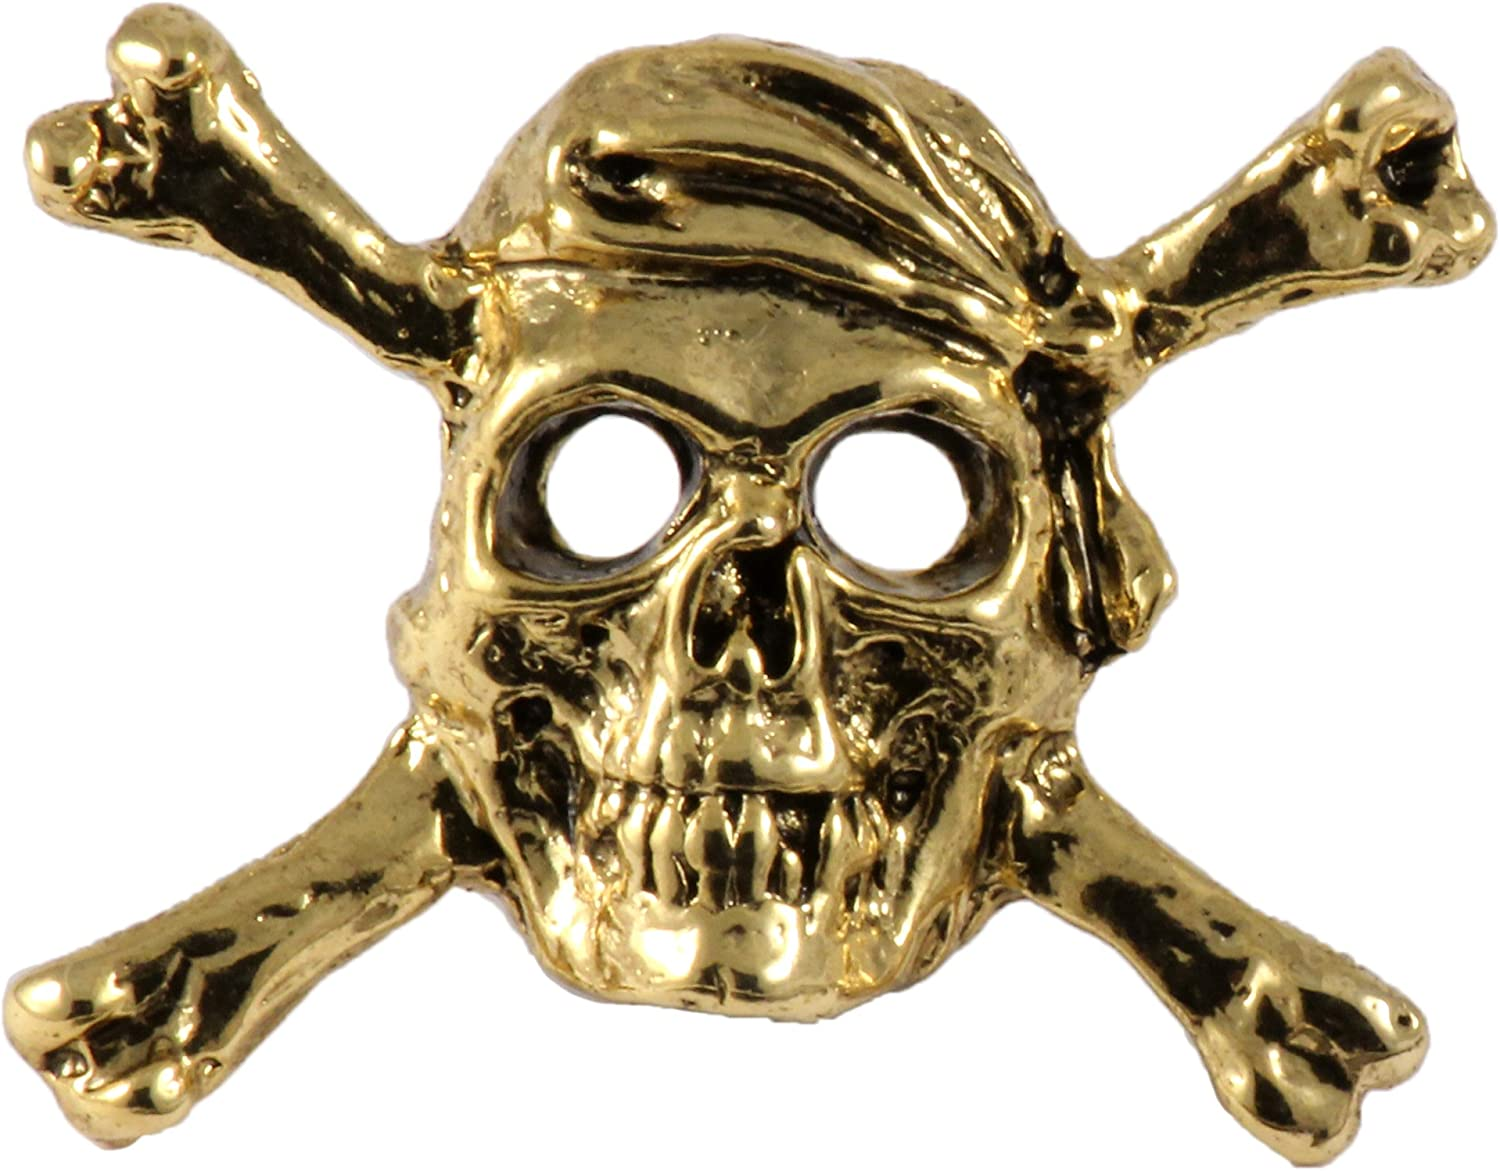 Creative Pewter Designs Pirate Skull & Crossbones 22k Gold Plated Lapel Pin, Brooch, Jewelry, AG167